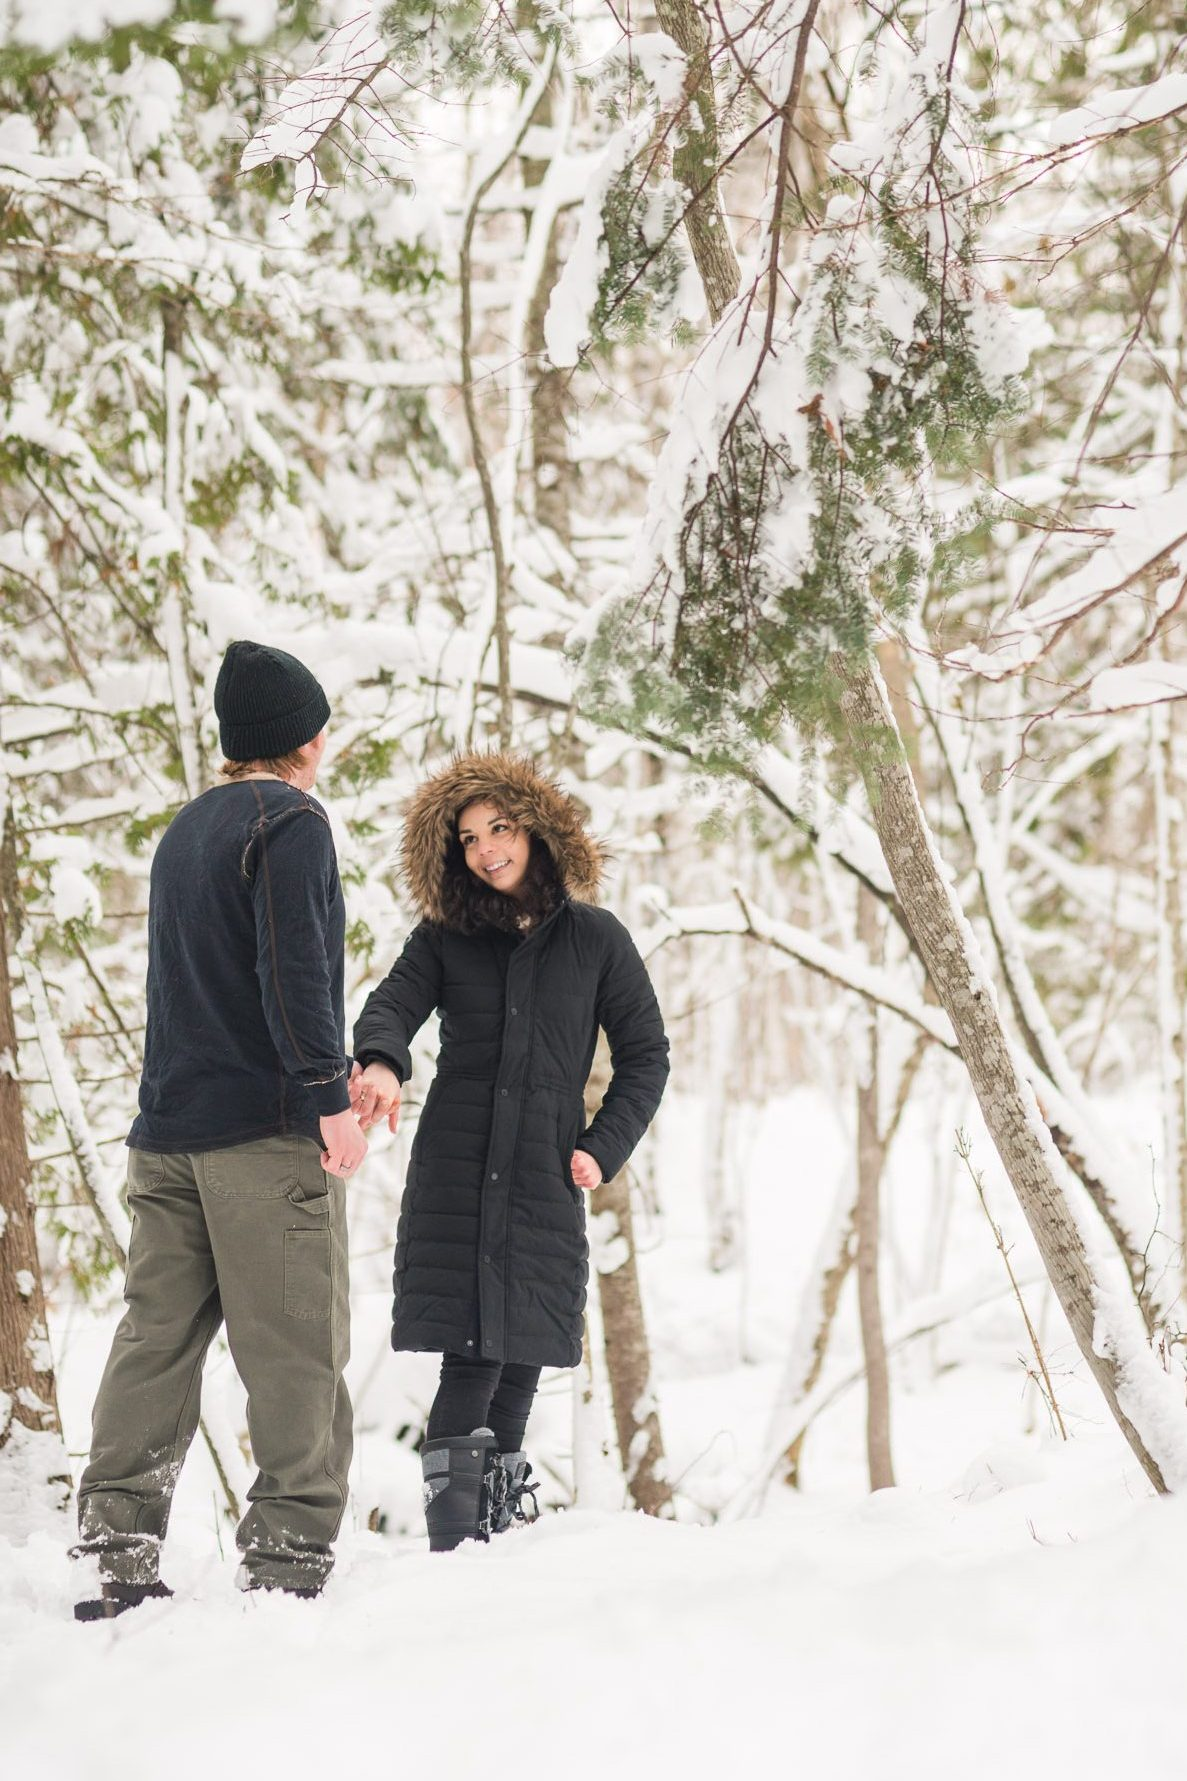 planning for a winter photo session by dressing correctly